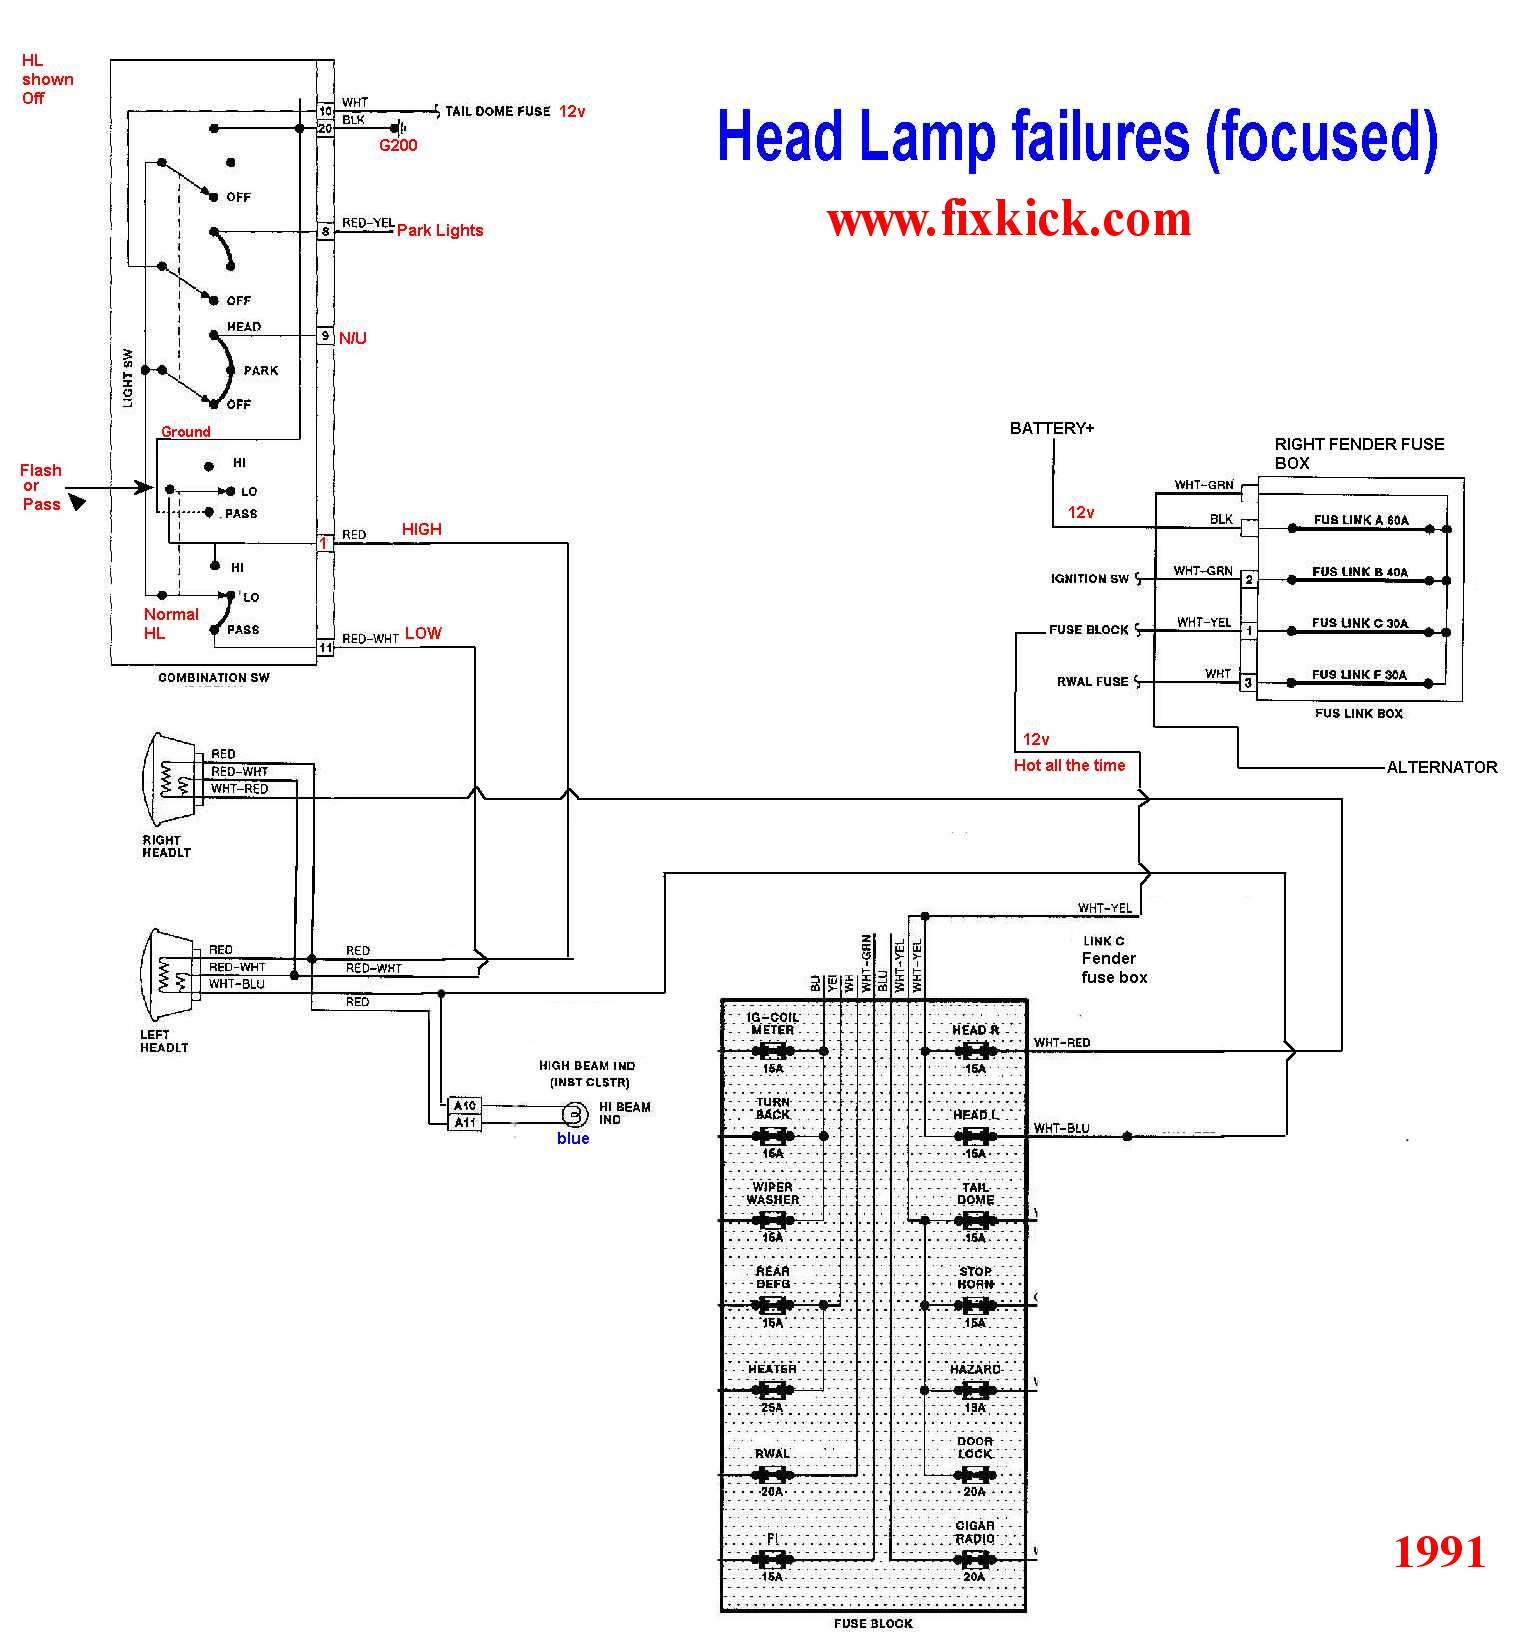 HL1A schematics to run engine Wiring-Diagram 1995 Geo Metro at virtualis.co